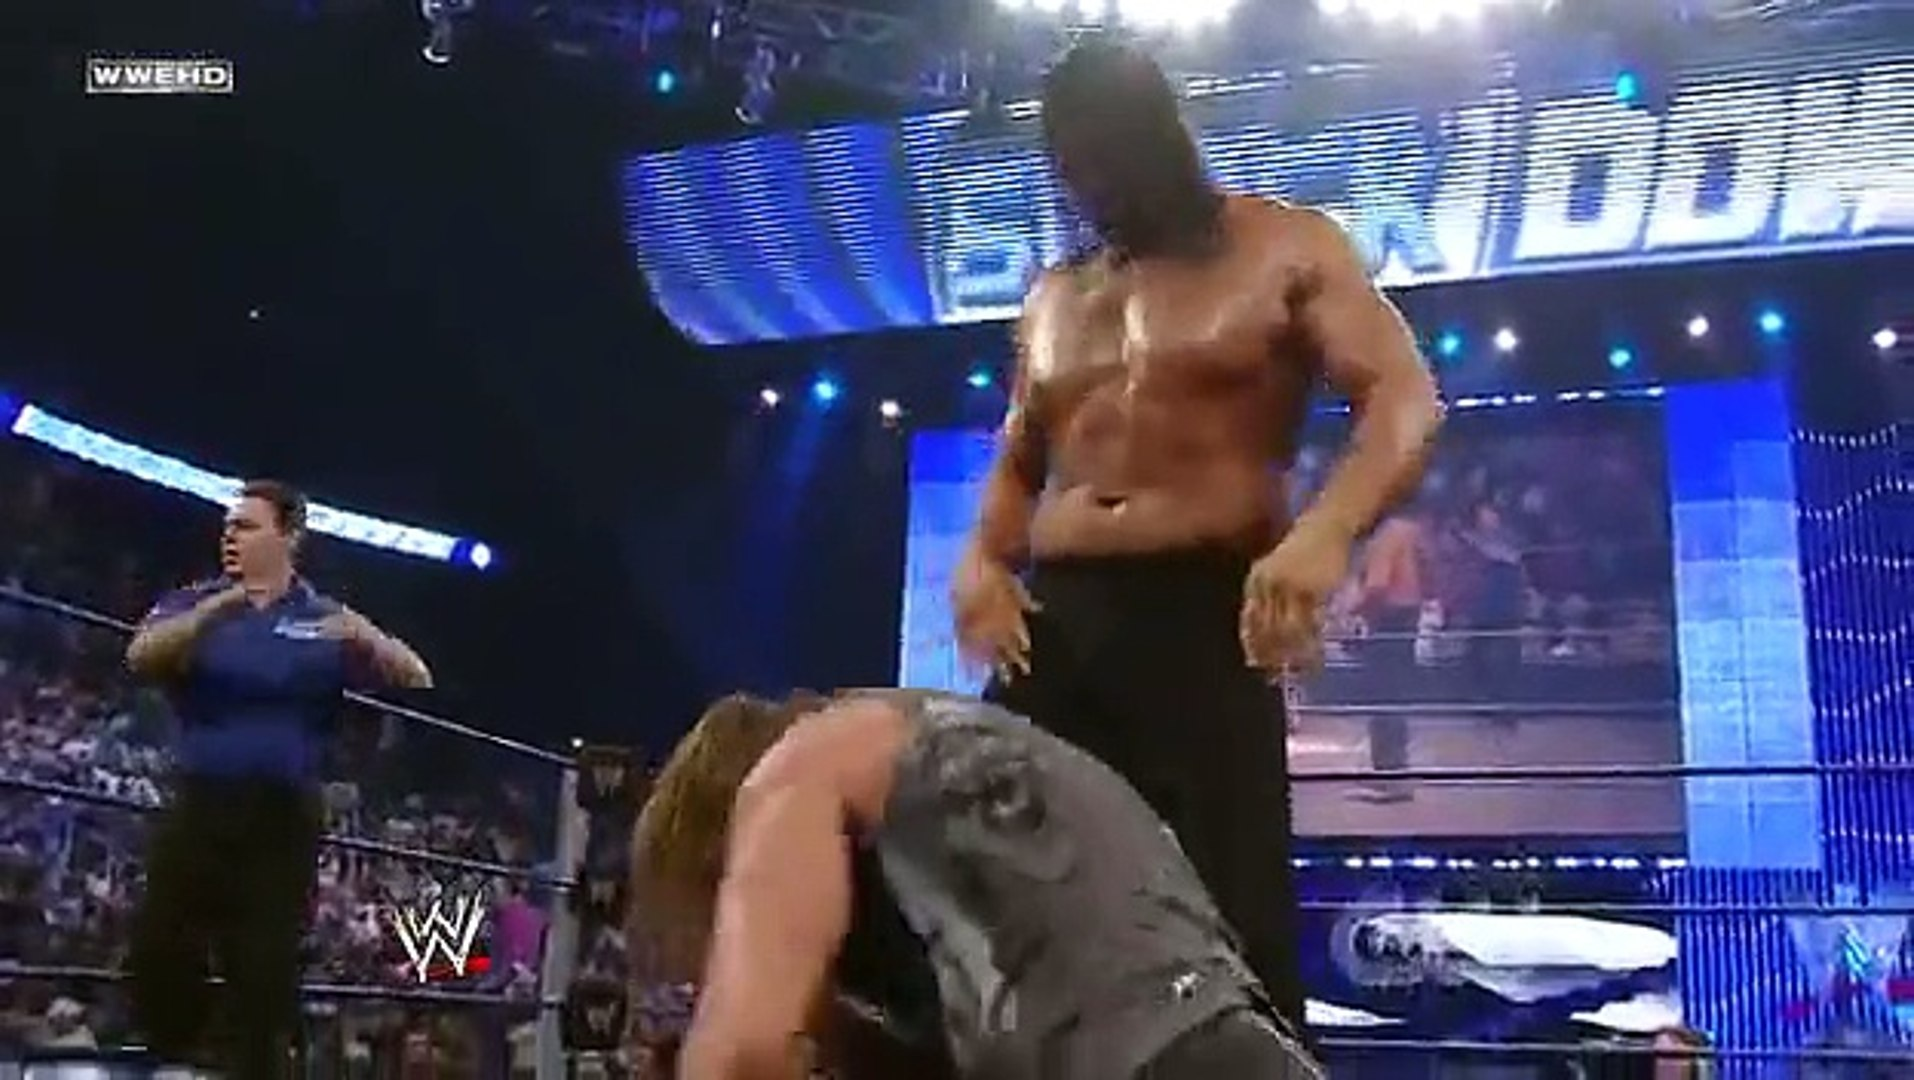 Triple H vs. The Great Khali - Broken Glass Arm Wrestling